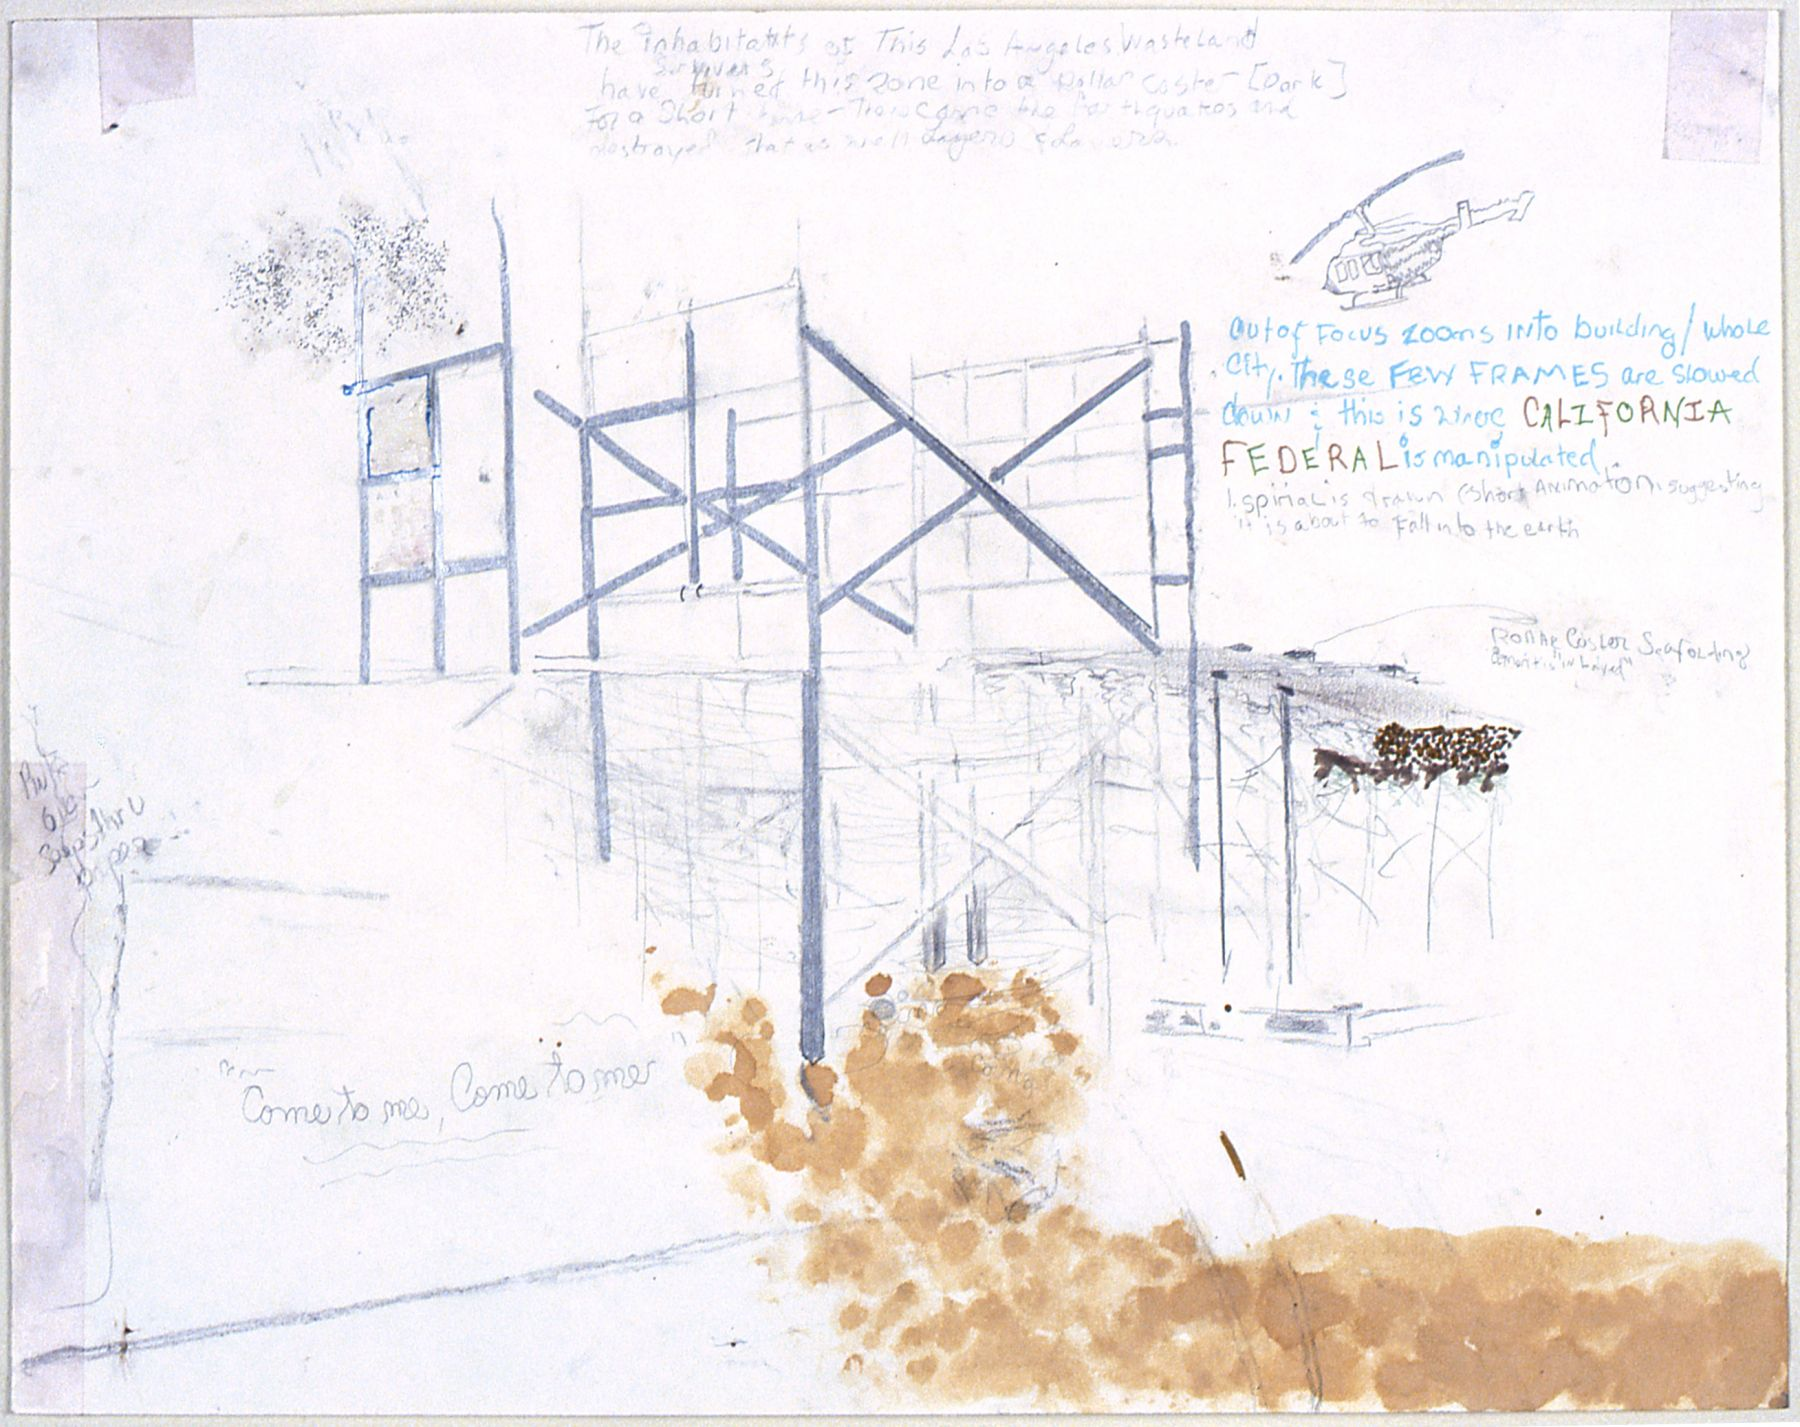 Julie Becker, Untitled (Roller Coaster Scaffolding), 2000, Mixed media on paper, 11 x 14 inches